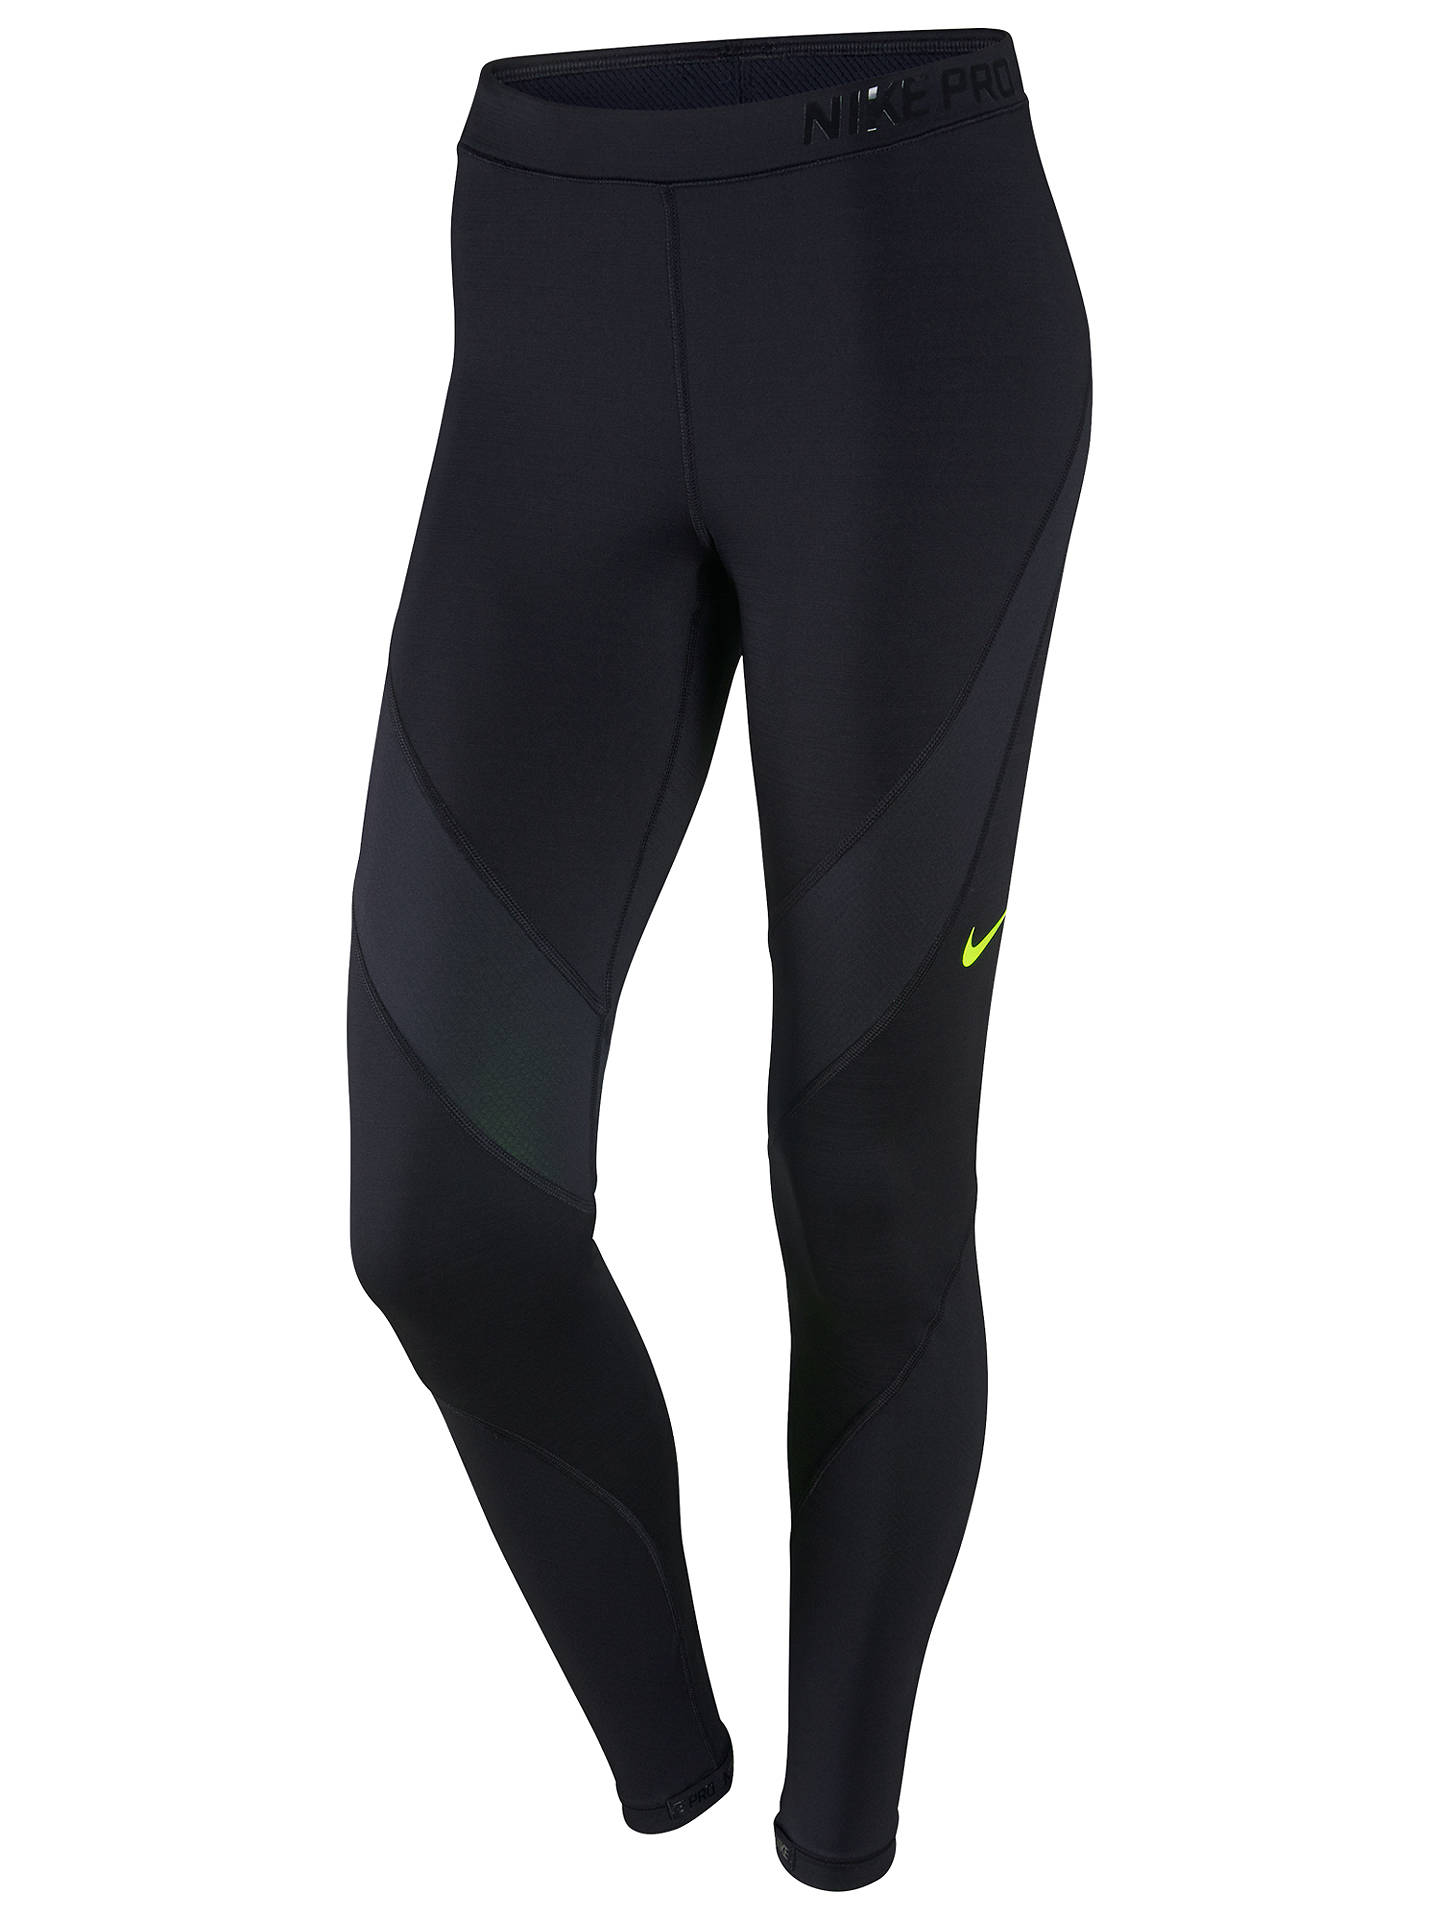 biggest discount better online store Nike Pro Hyperwarm Training Tights, Black/Volt at John Lewis ...